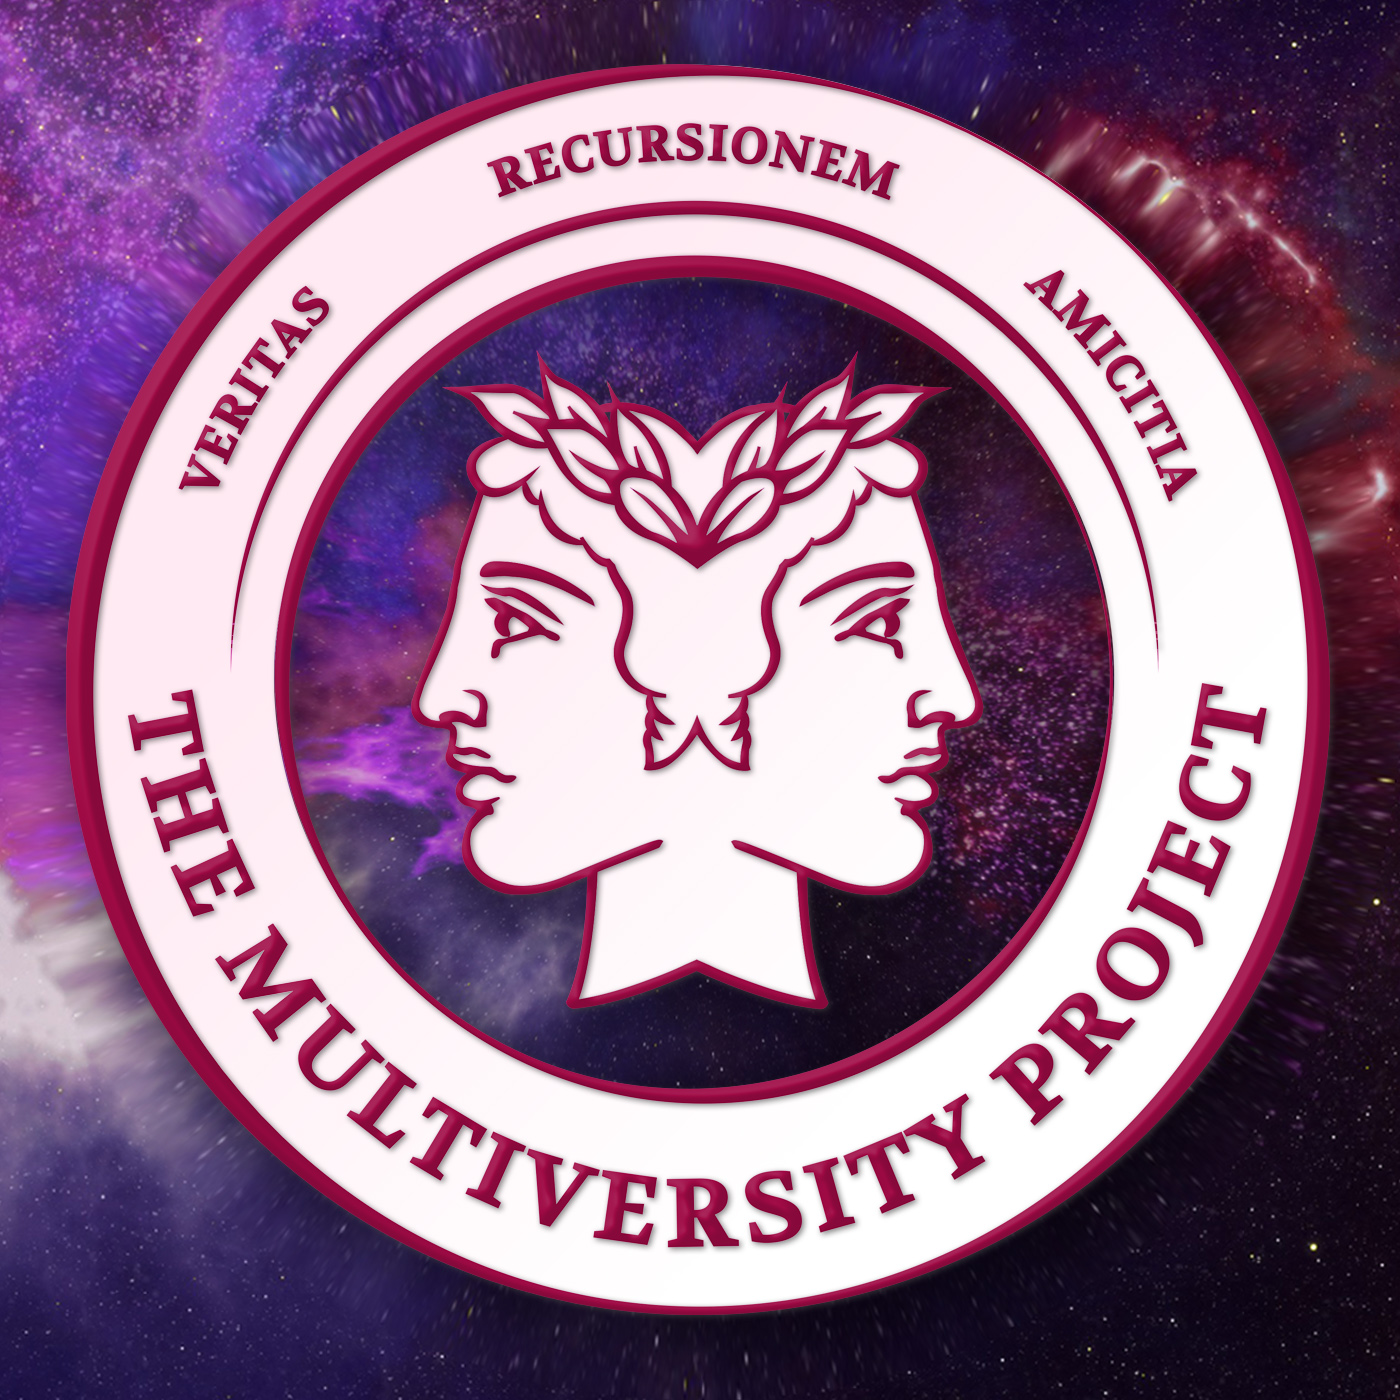 The Multiversity Project